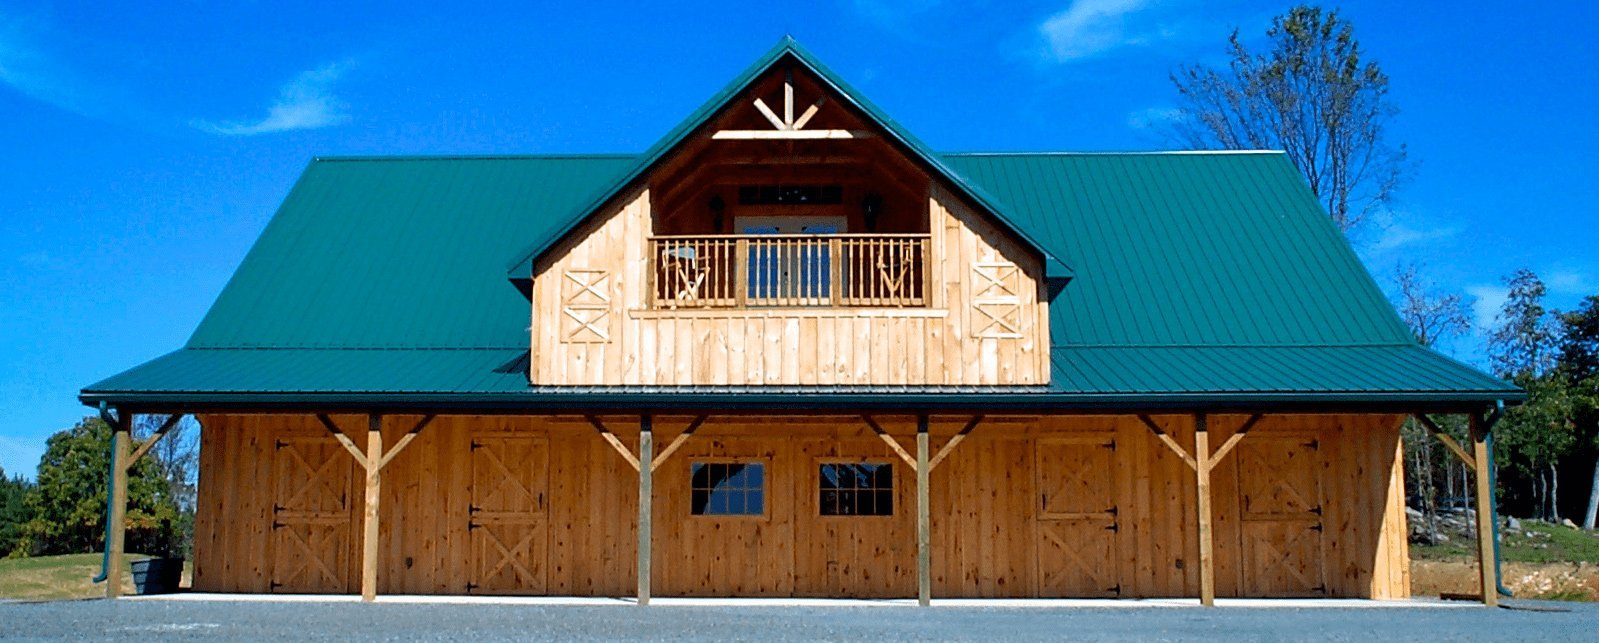 Barn metal roofing